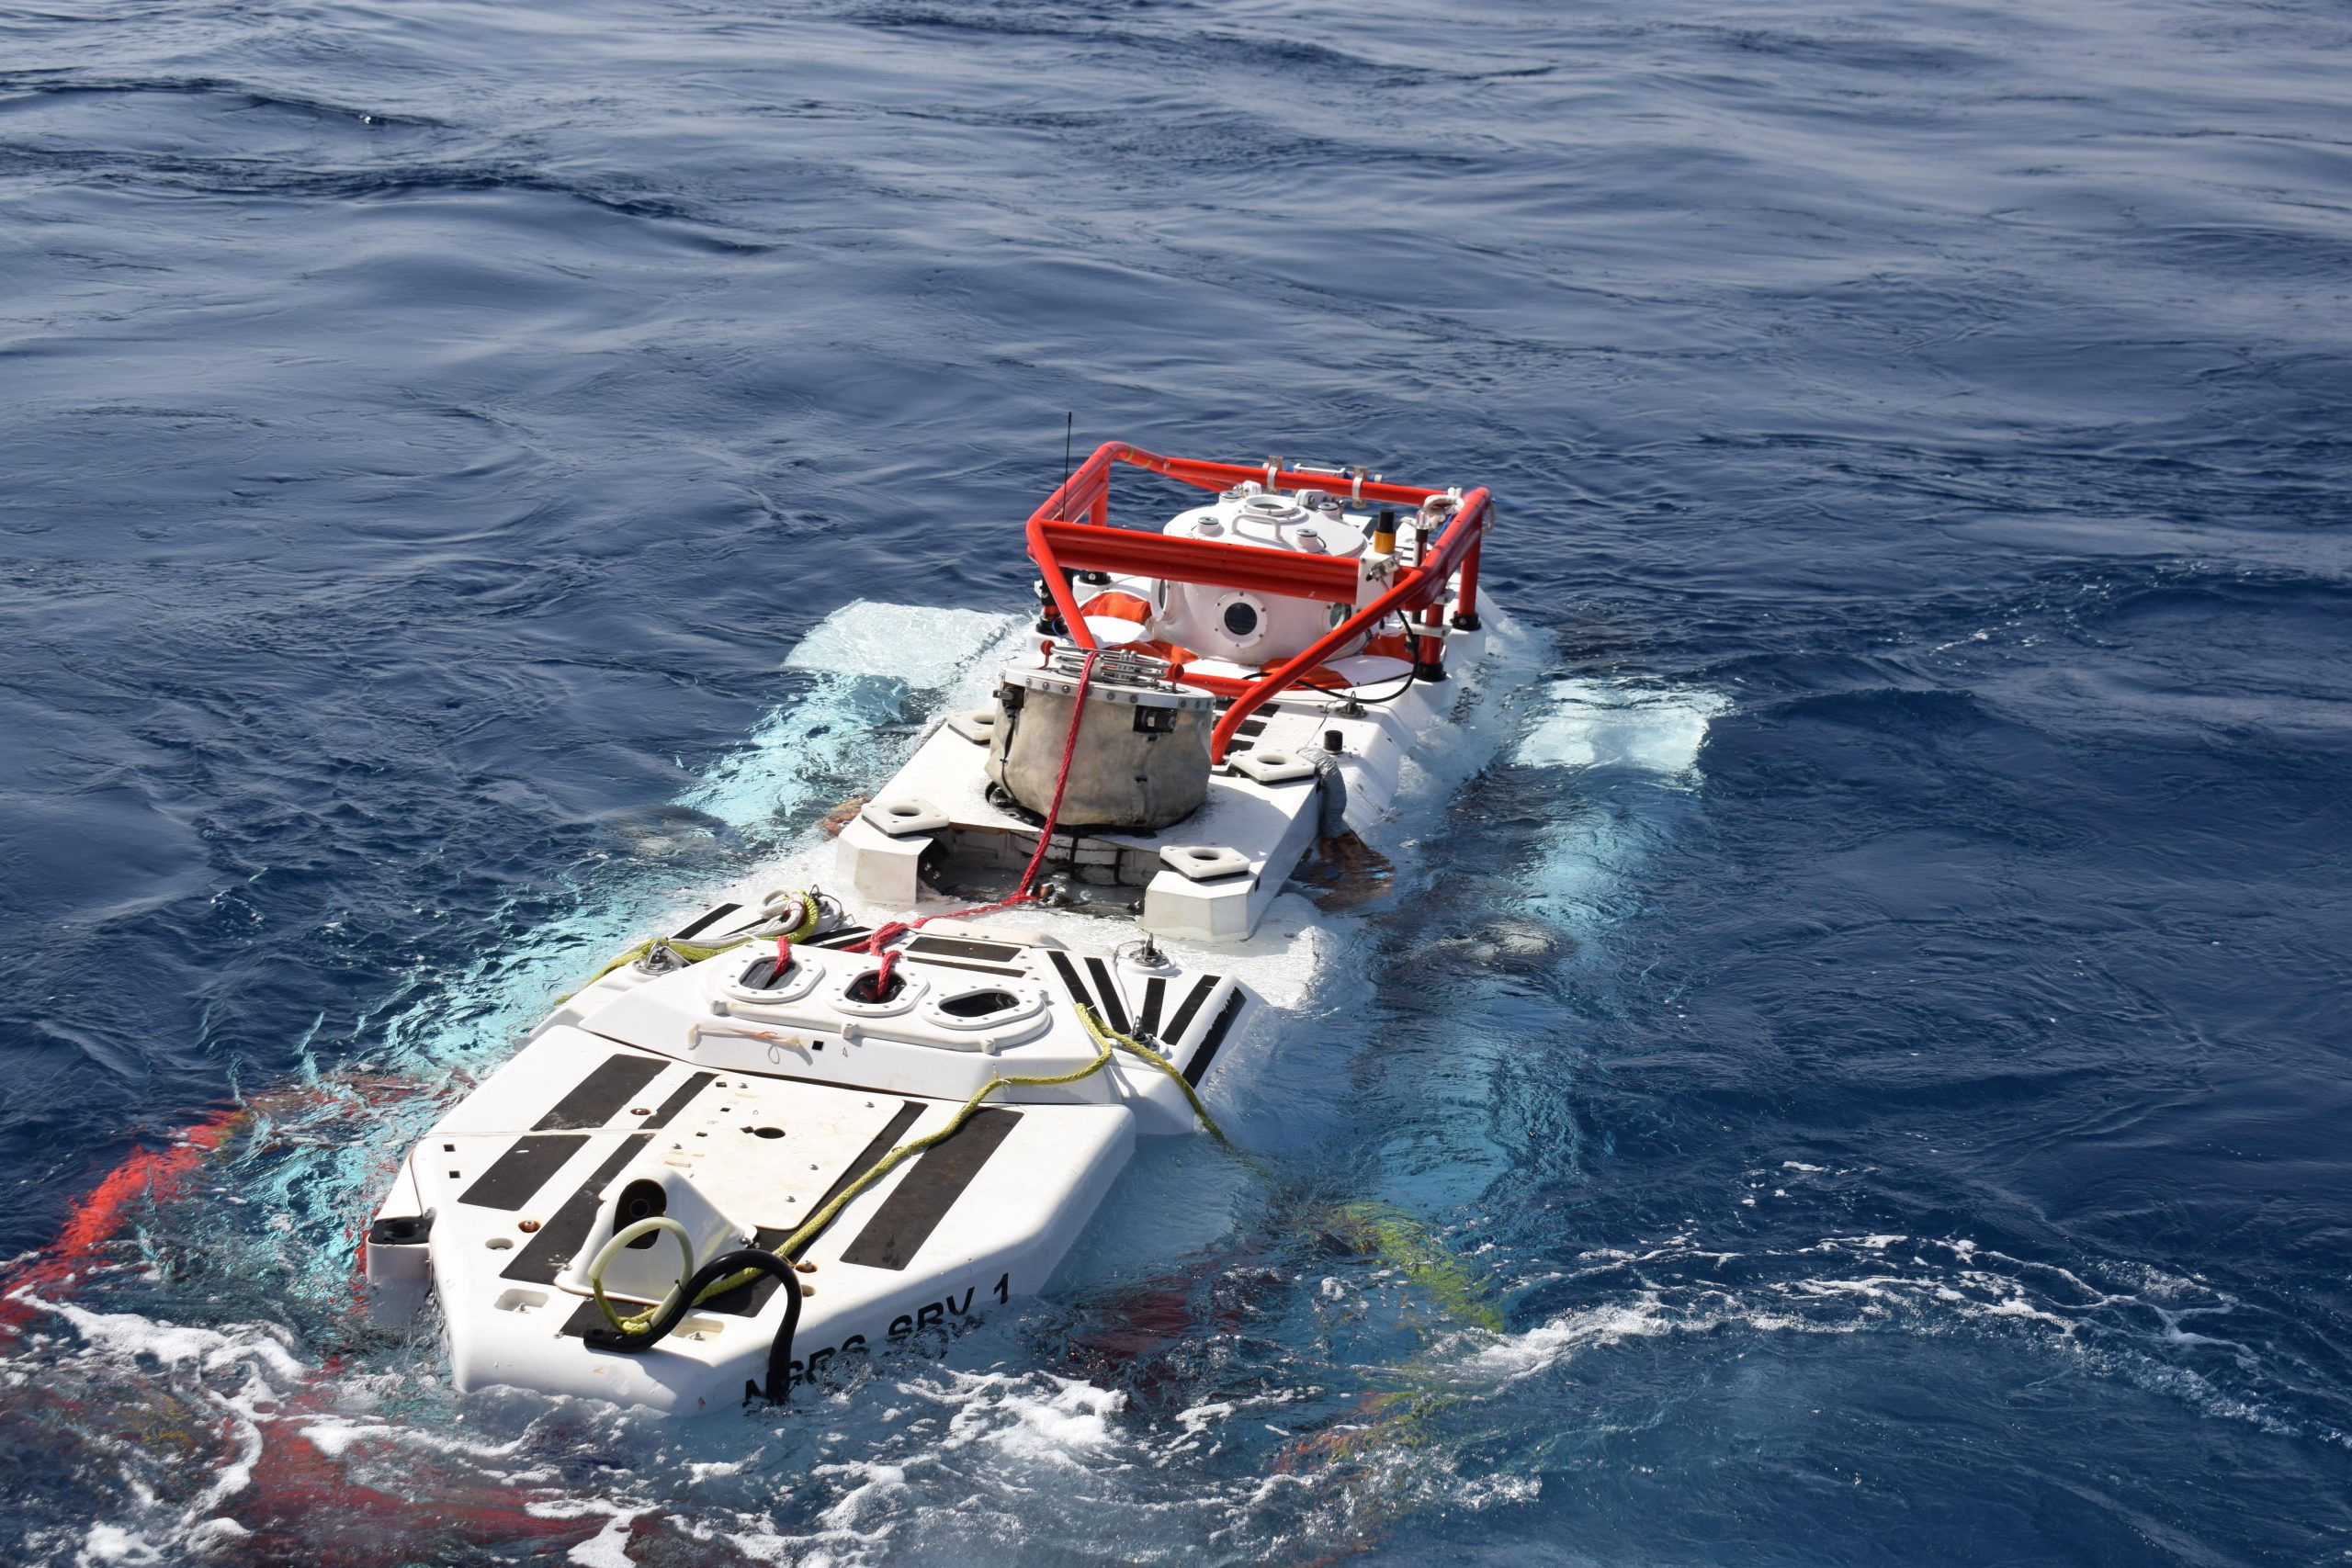 MEDITERRANEAN SEA (Sept. 20, 2017) - The NATO Submarine Rescue System (NSRS) submarine Nemo prepares to make a simulated rescue dive as part of NATO submarine escape and rescue exercise Dynamic Monarch 2017 while off the coast of Marmaris, Turkey. The NSRS mini submarine can dive to depths of 600 meters and connect to the escape hatch on a submarine in order to rescue sailors inside a distressed submarine. NATO photo by Denver Applehans/Released.